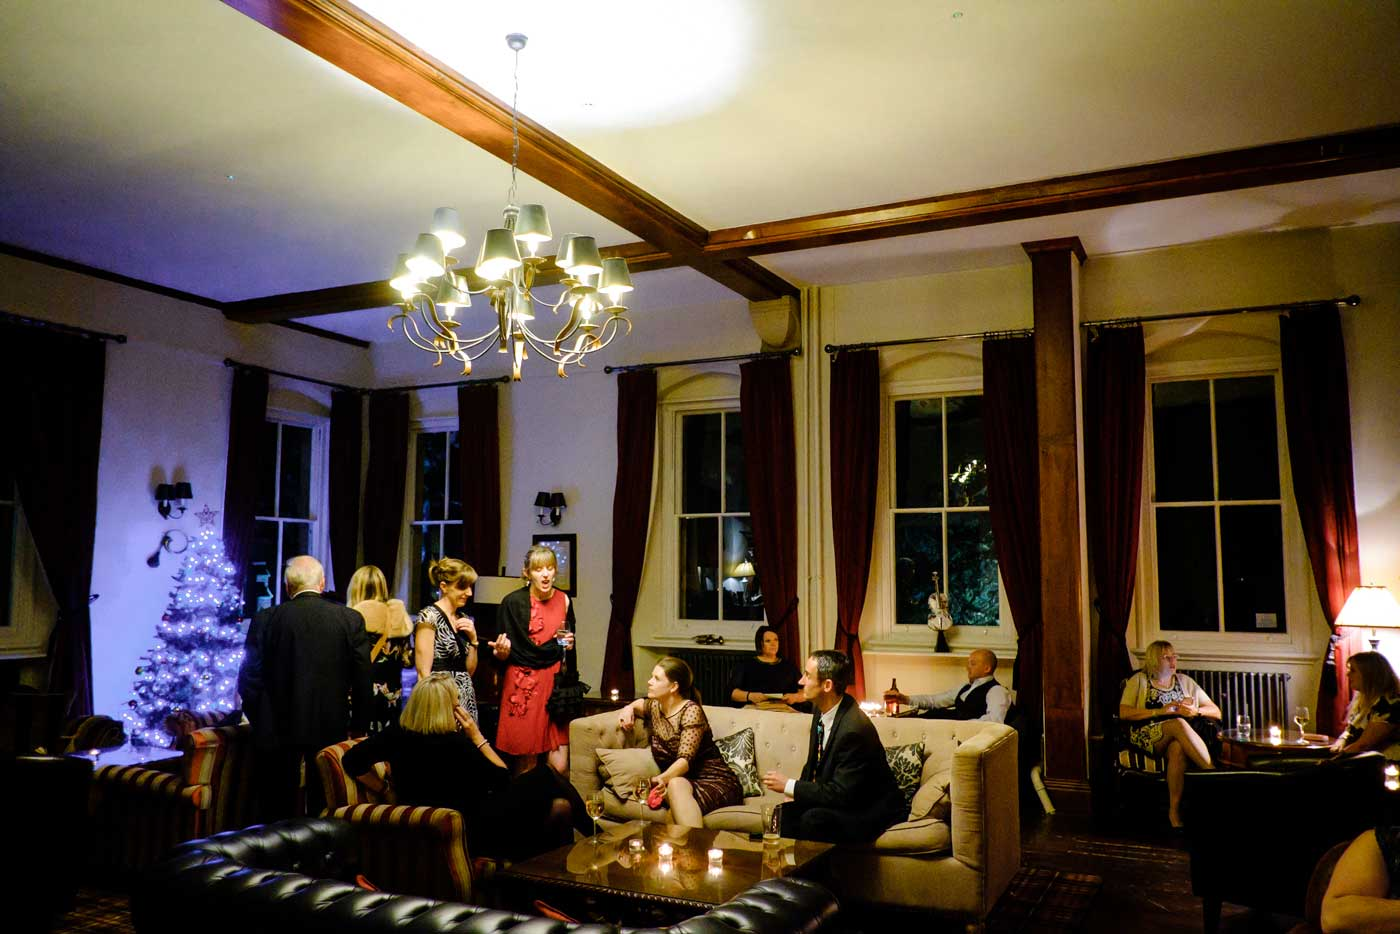 Guests's relaxing in the Piano Lounge at Stanbrook Abbey by Stanbrook Abbey wedding photographer Clive Blair Photography